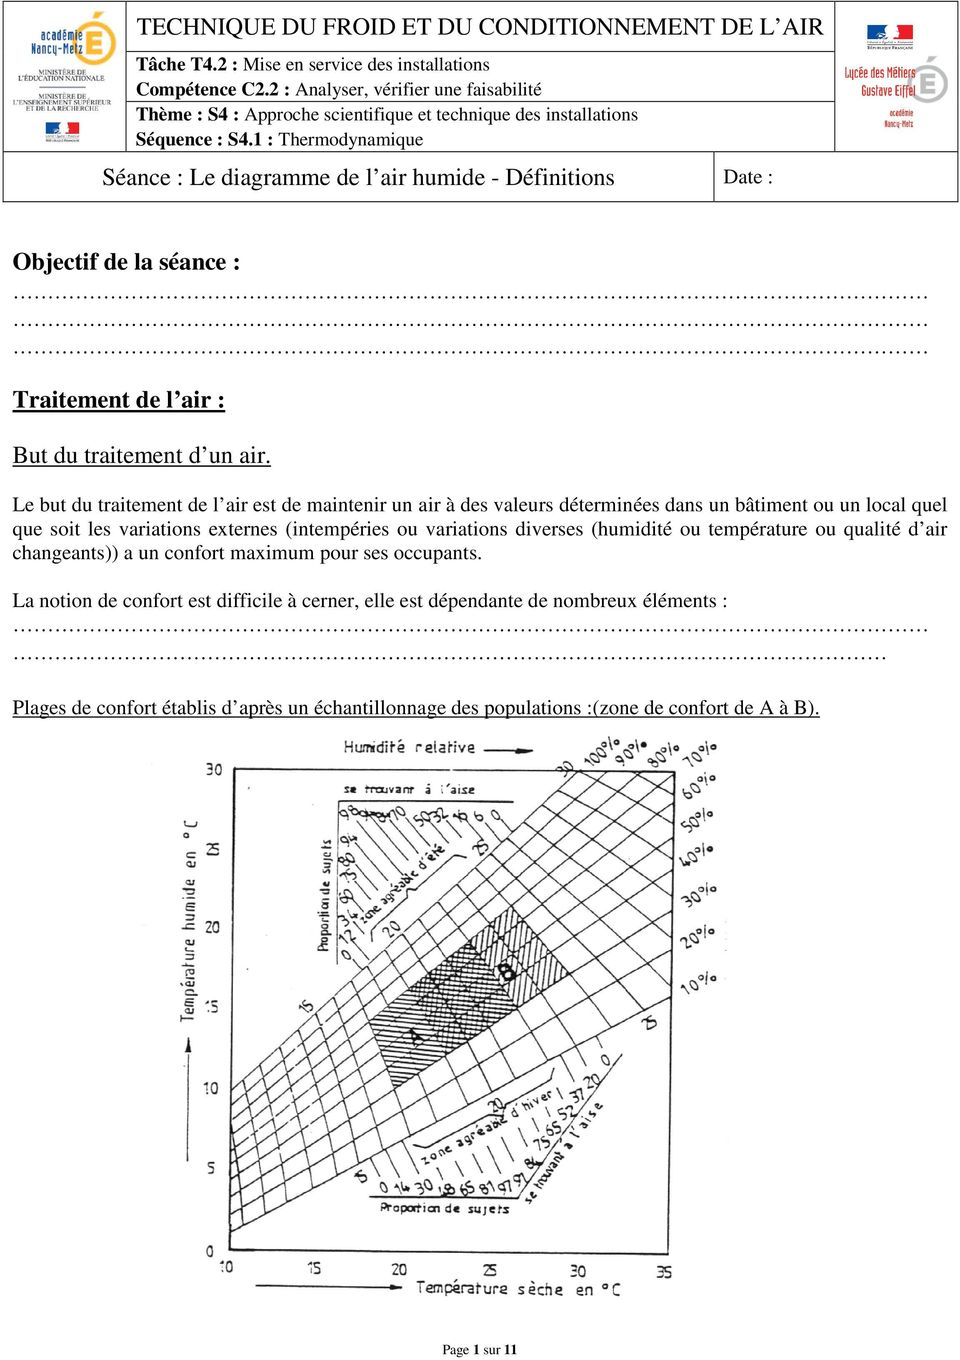 1 : Thermodynamique Séance : Le diagramme de l air humide - Définitions Date : Objectif de la séance : Traitement de l air : But du traitement d un air.